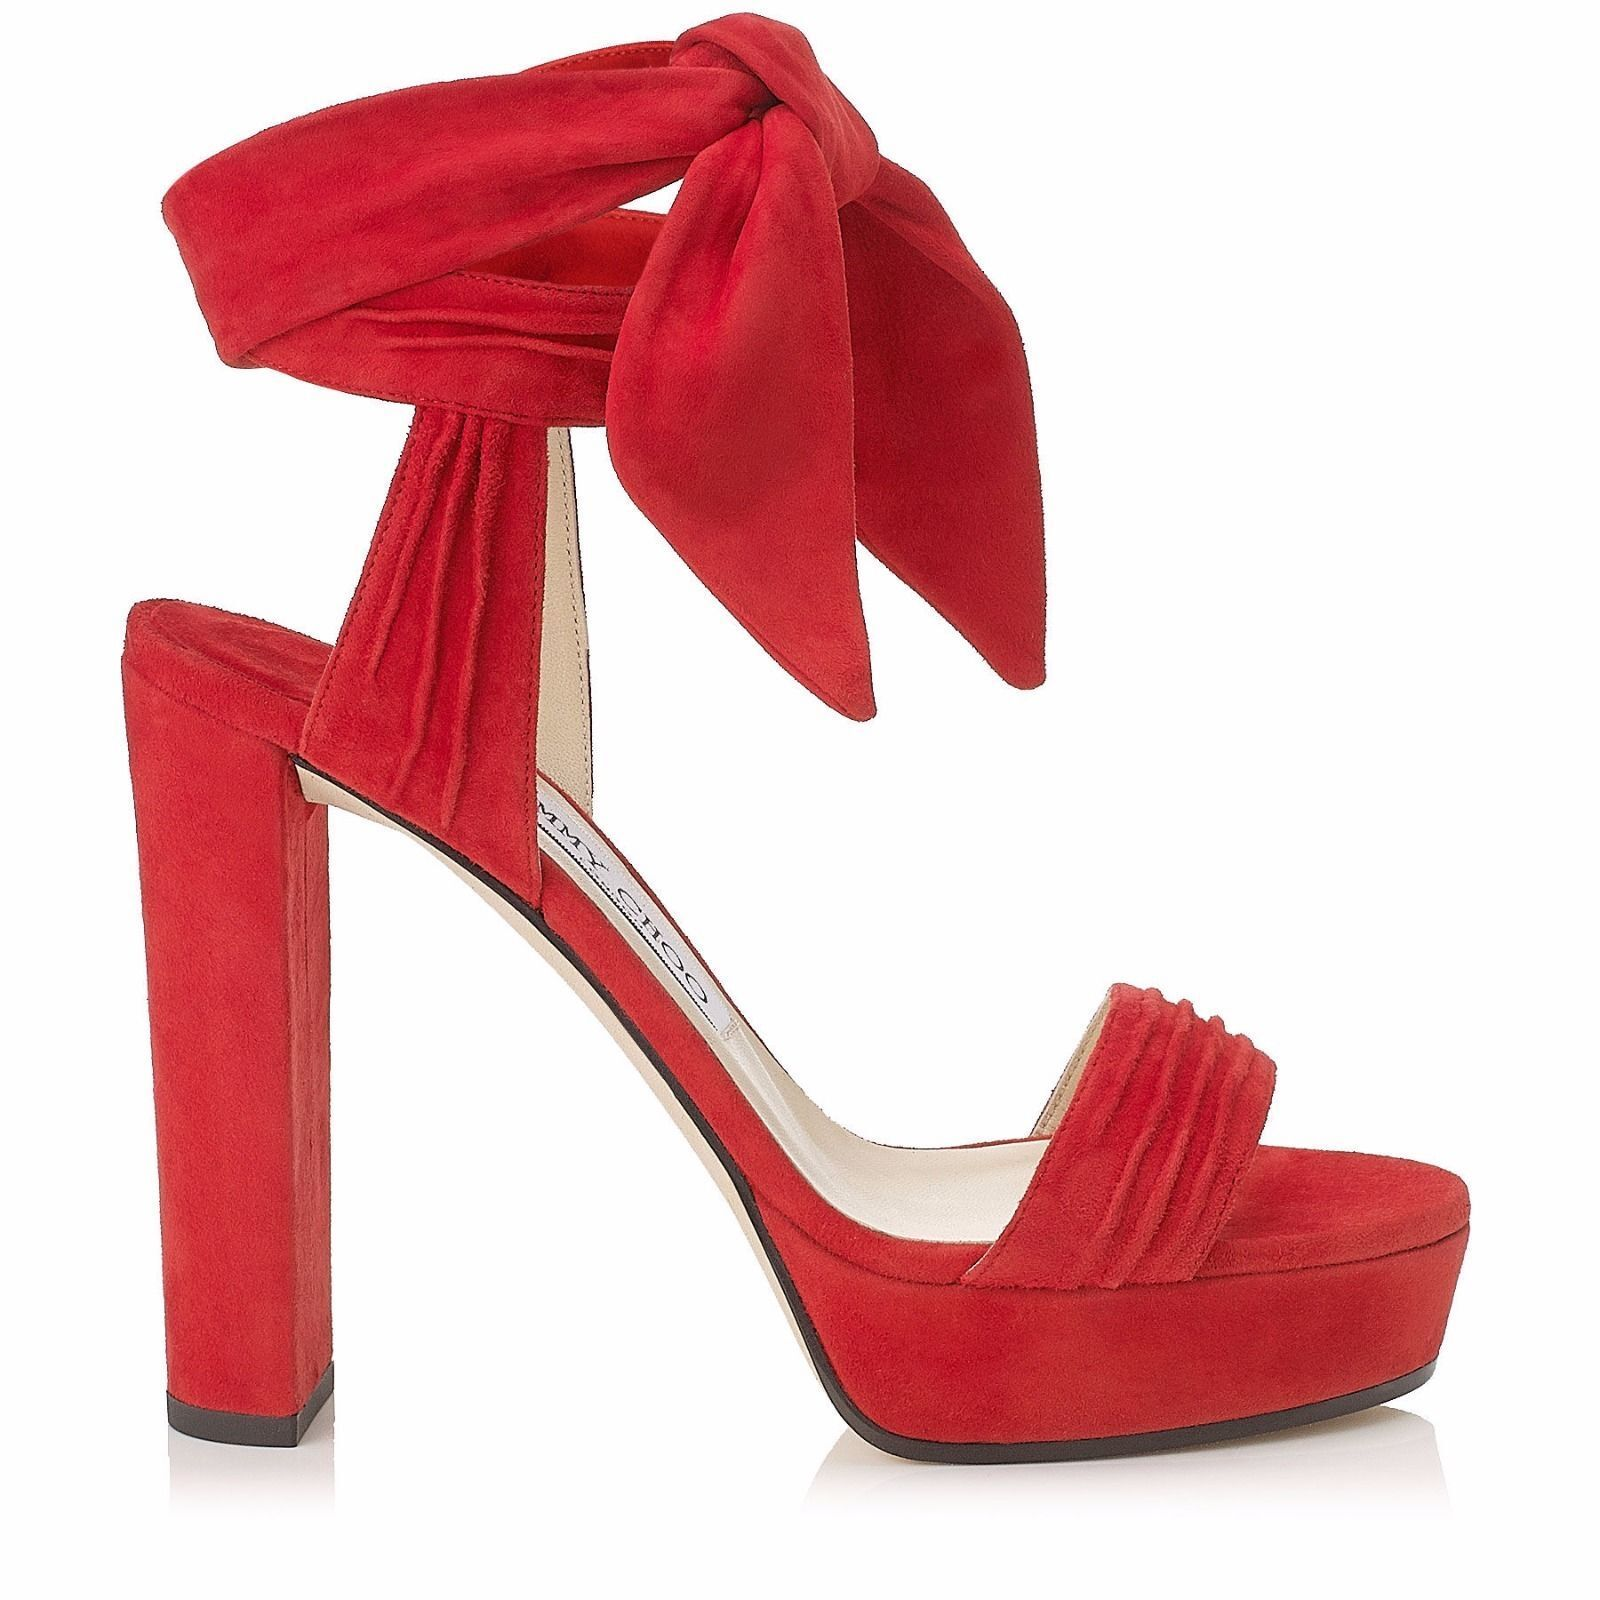 1 RIGHT SHOE ONLY Jimmy Choo Kaytrin Rosso Suede Platform Sandals size 37.5  895